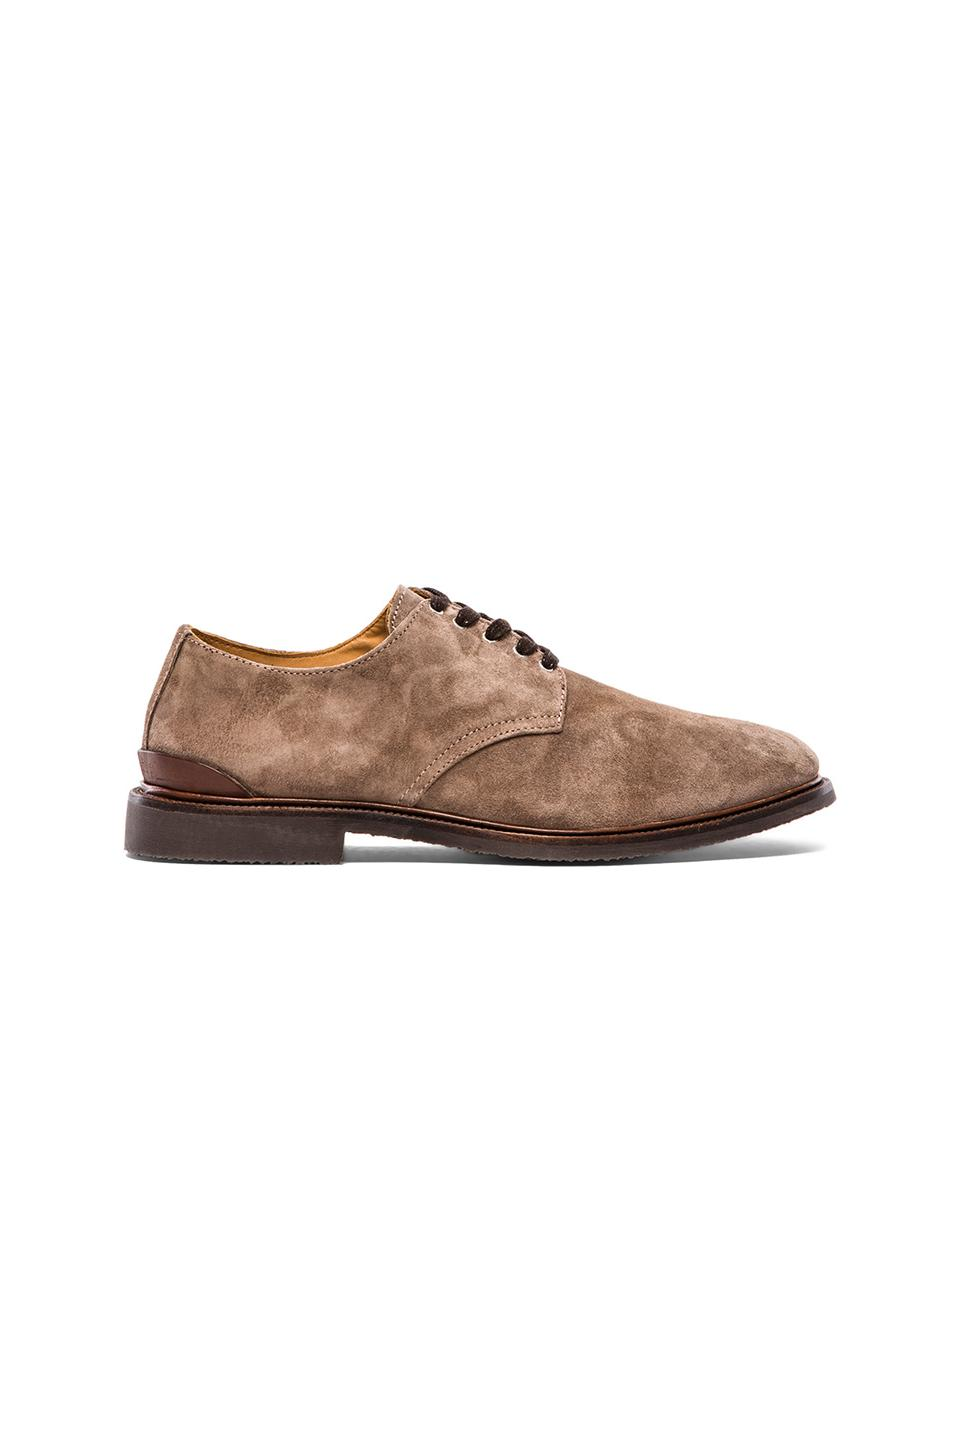 Rag & Bone Archer Rubber Oxford in Smoke